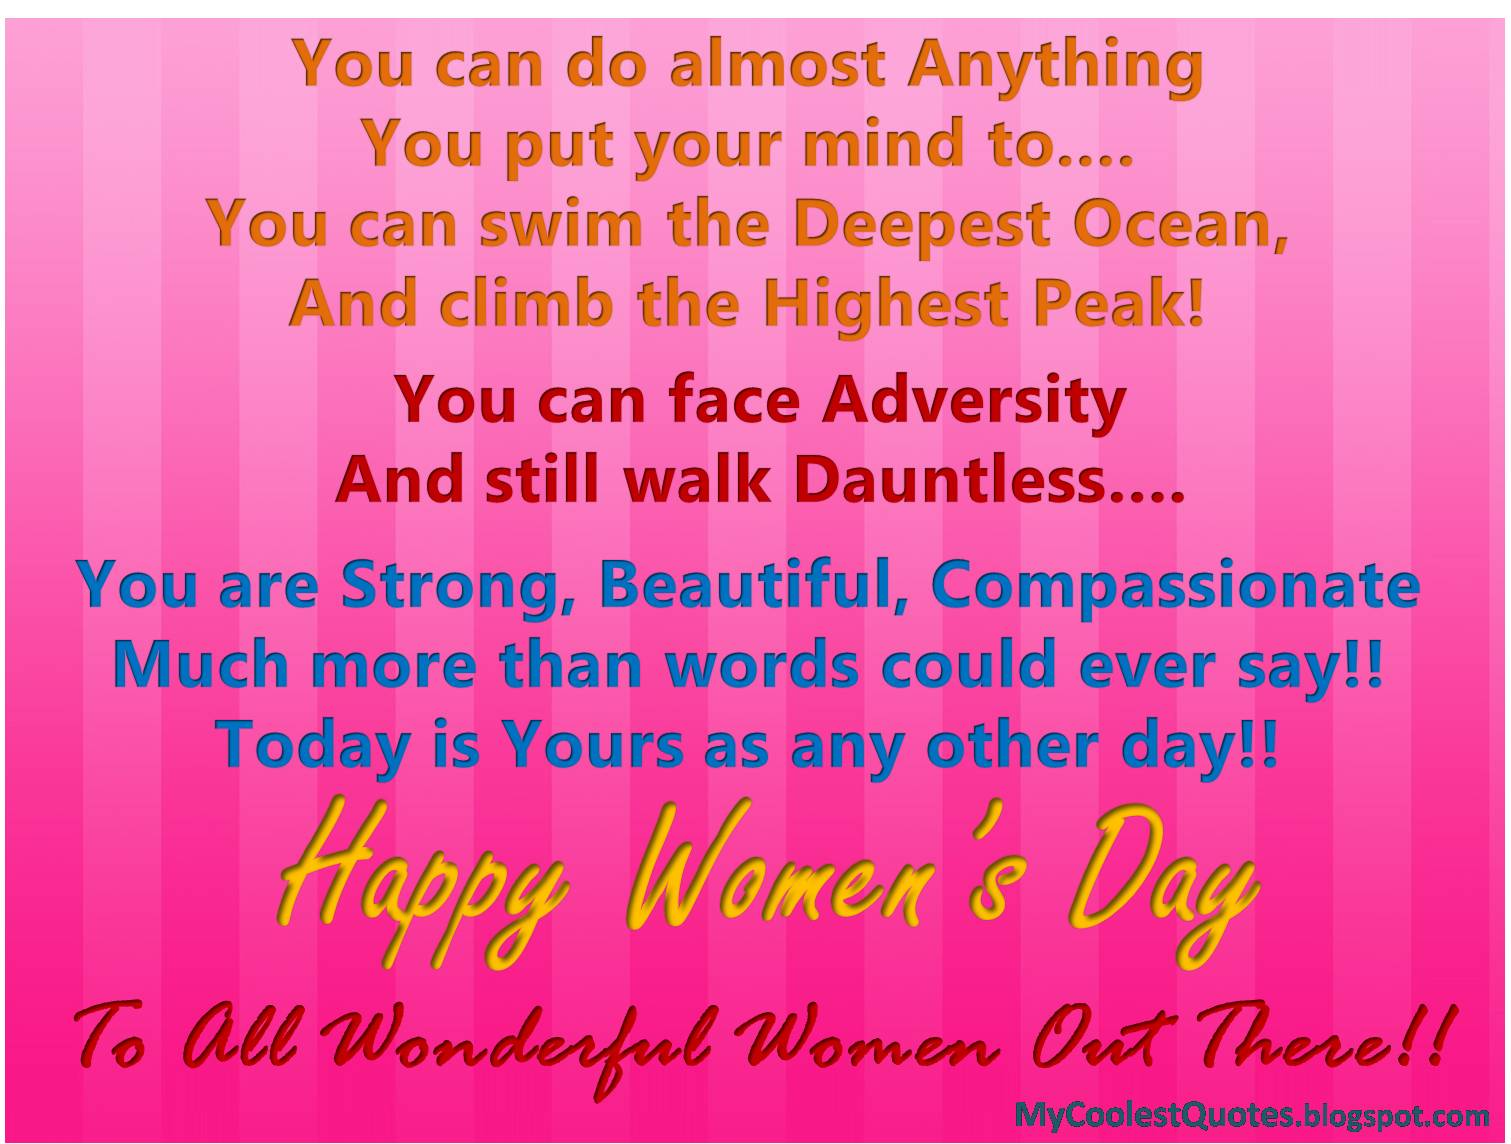 My Coolest Quotes Happy Womens Day Women Can Do Anything